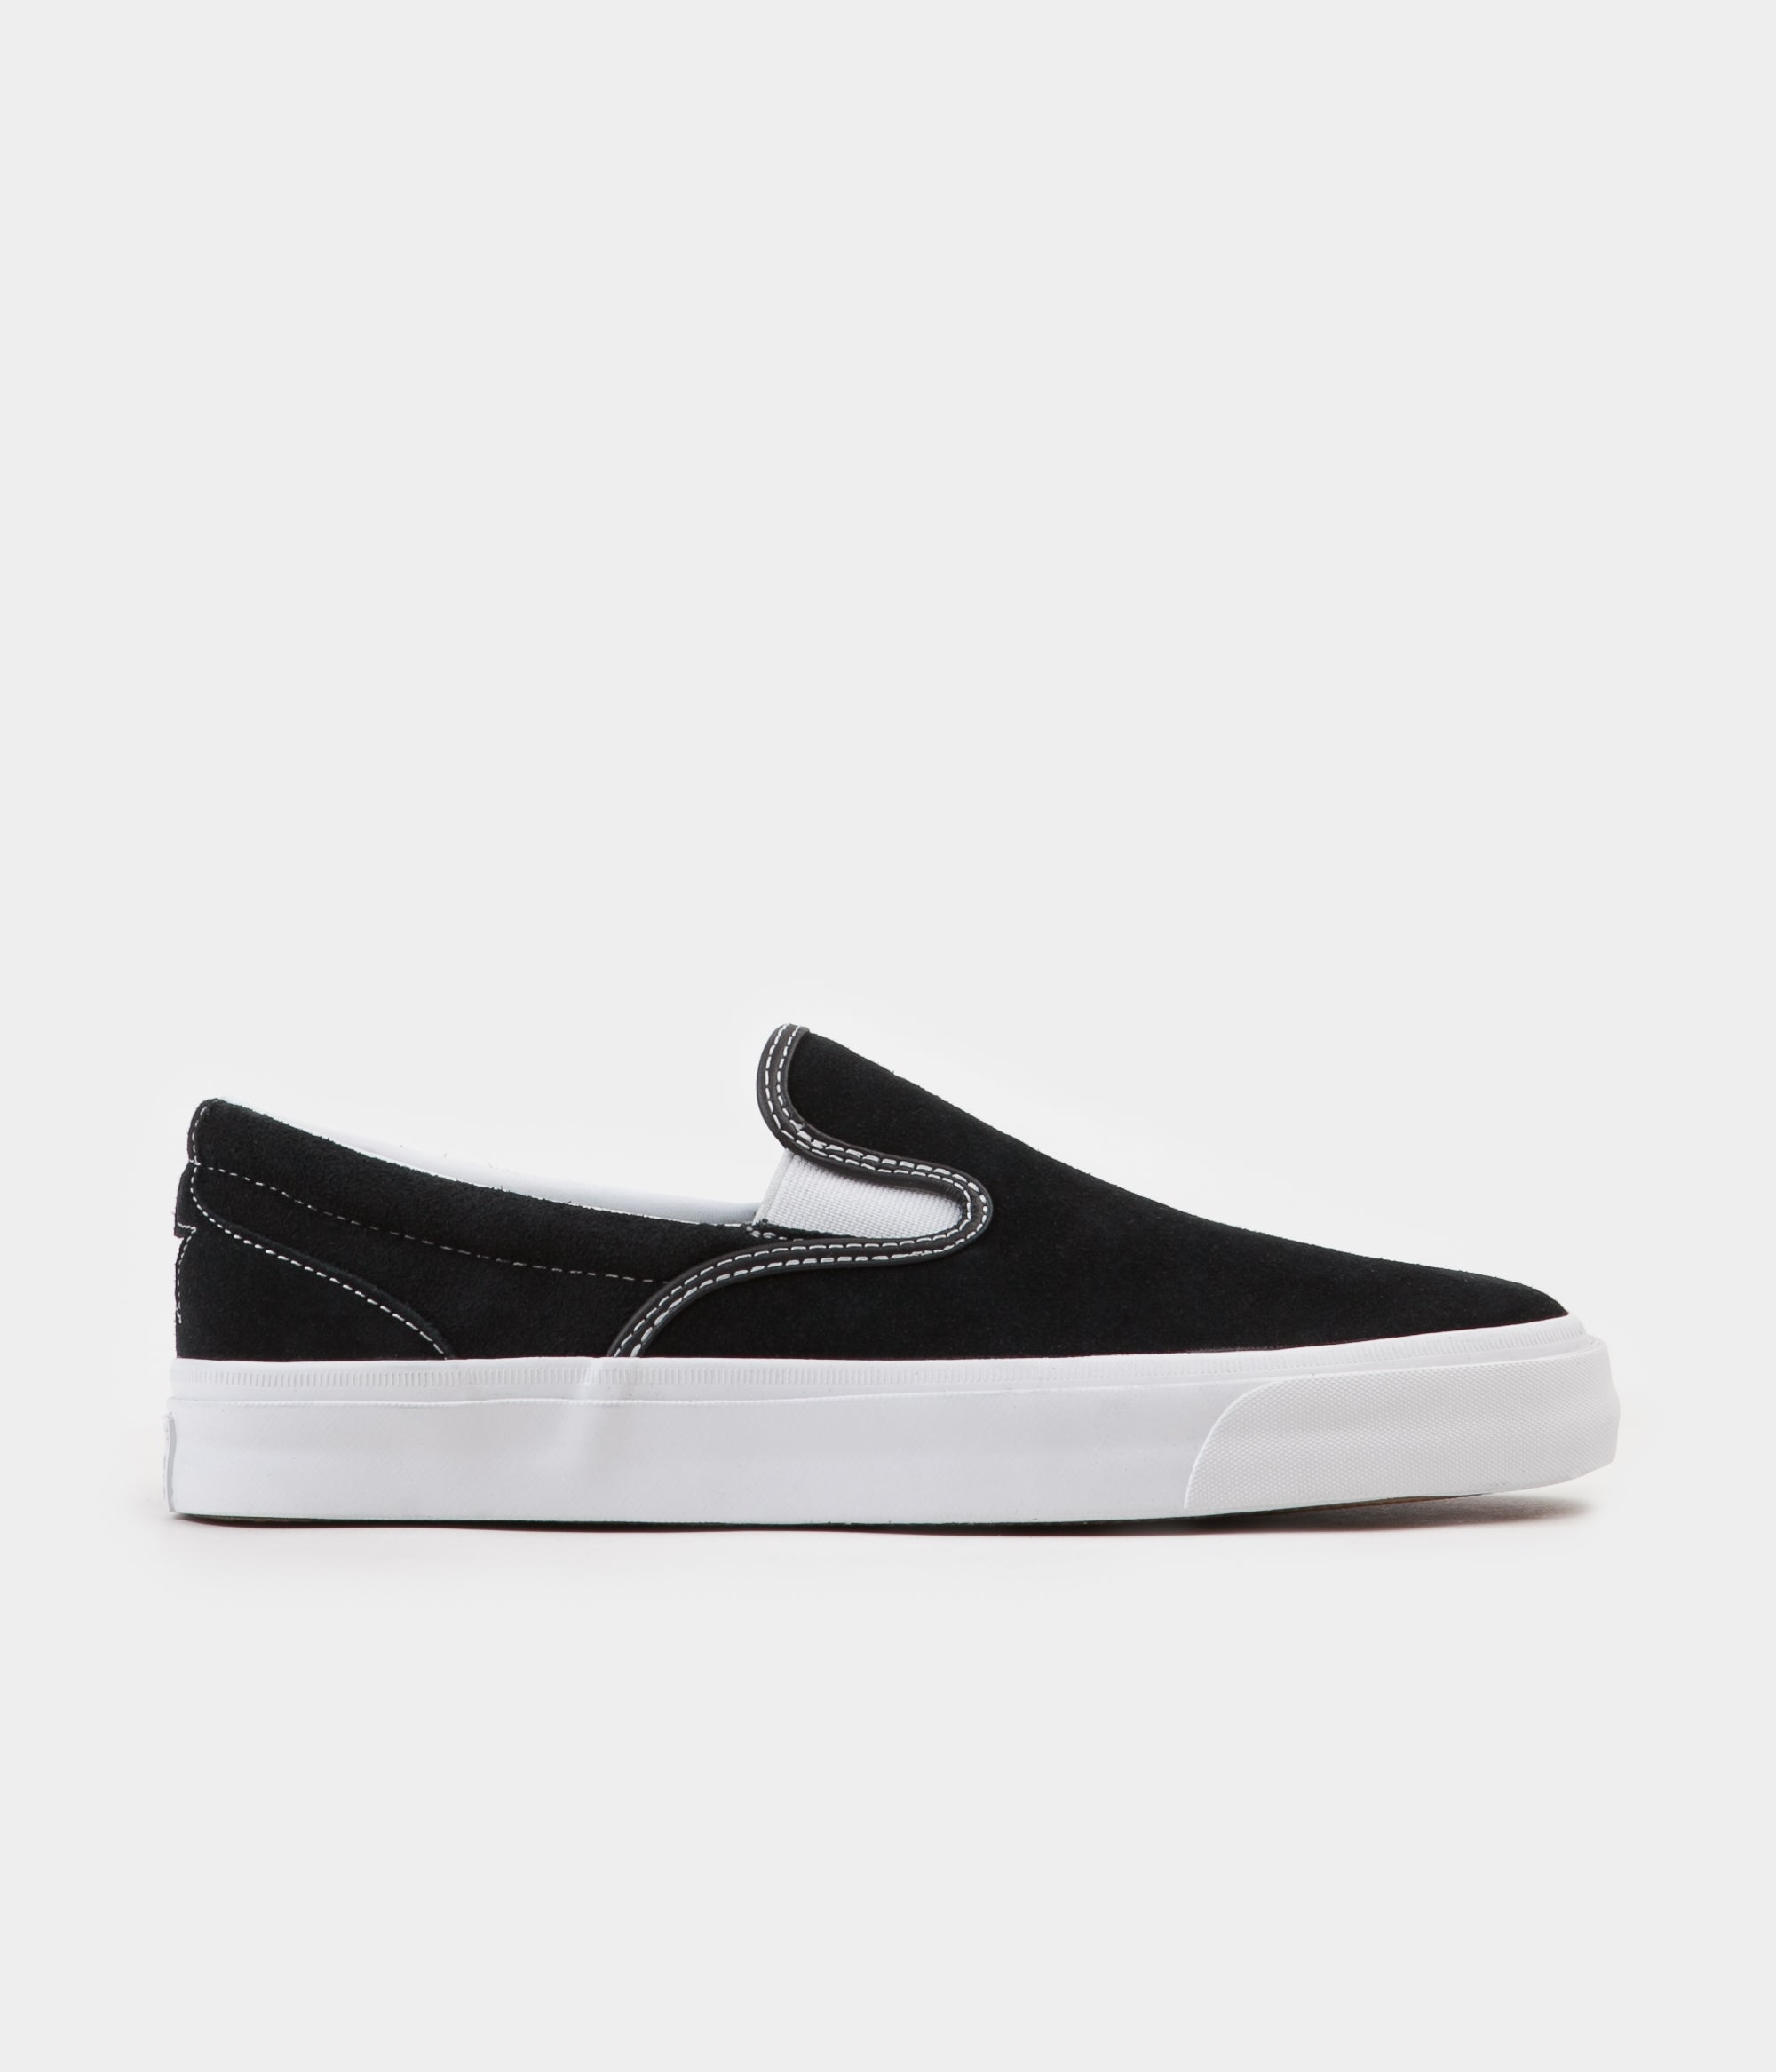 Converse One Star CC Slip On Shoes - Black   White   White  6bb6bd907e498